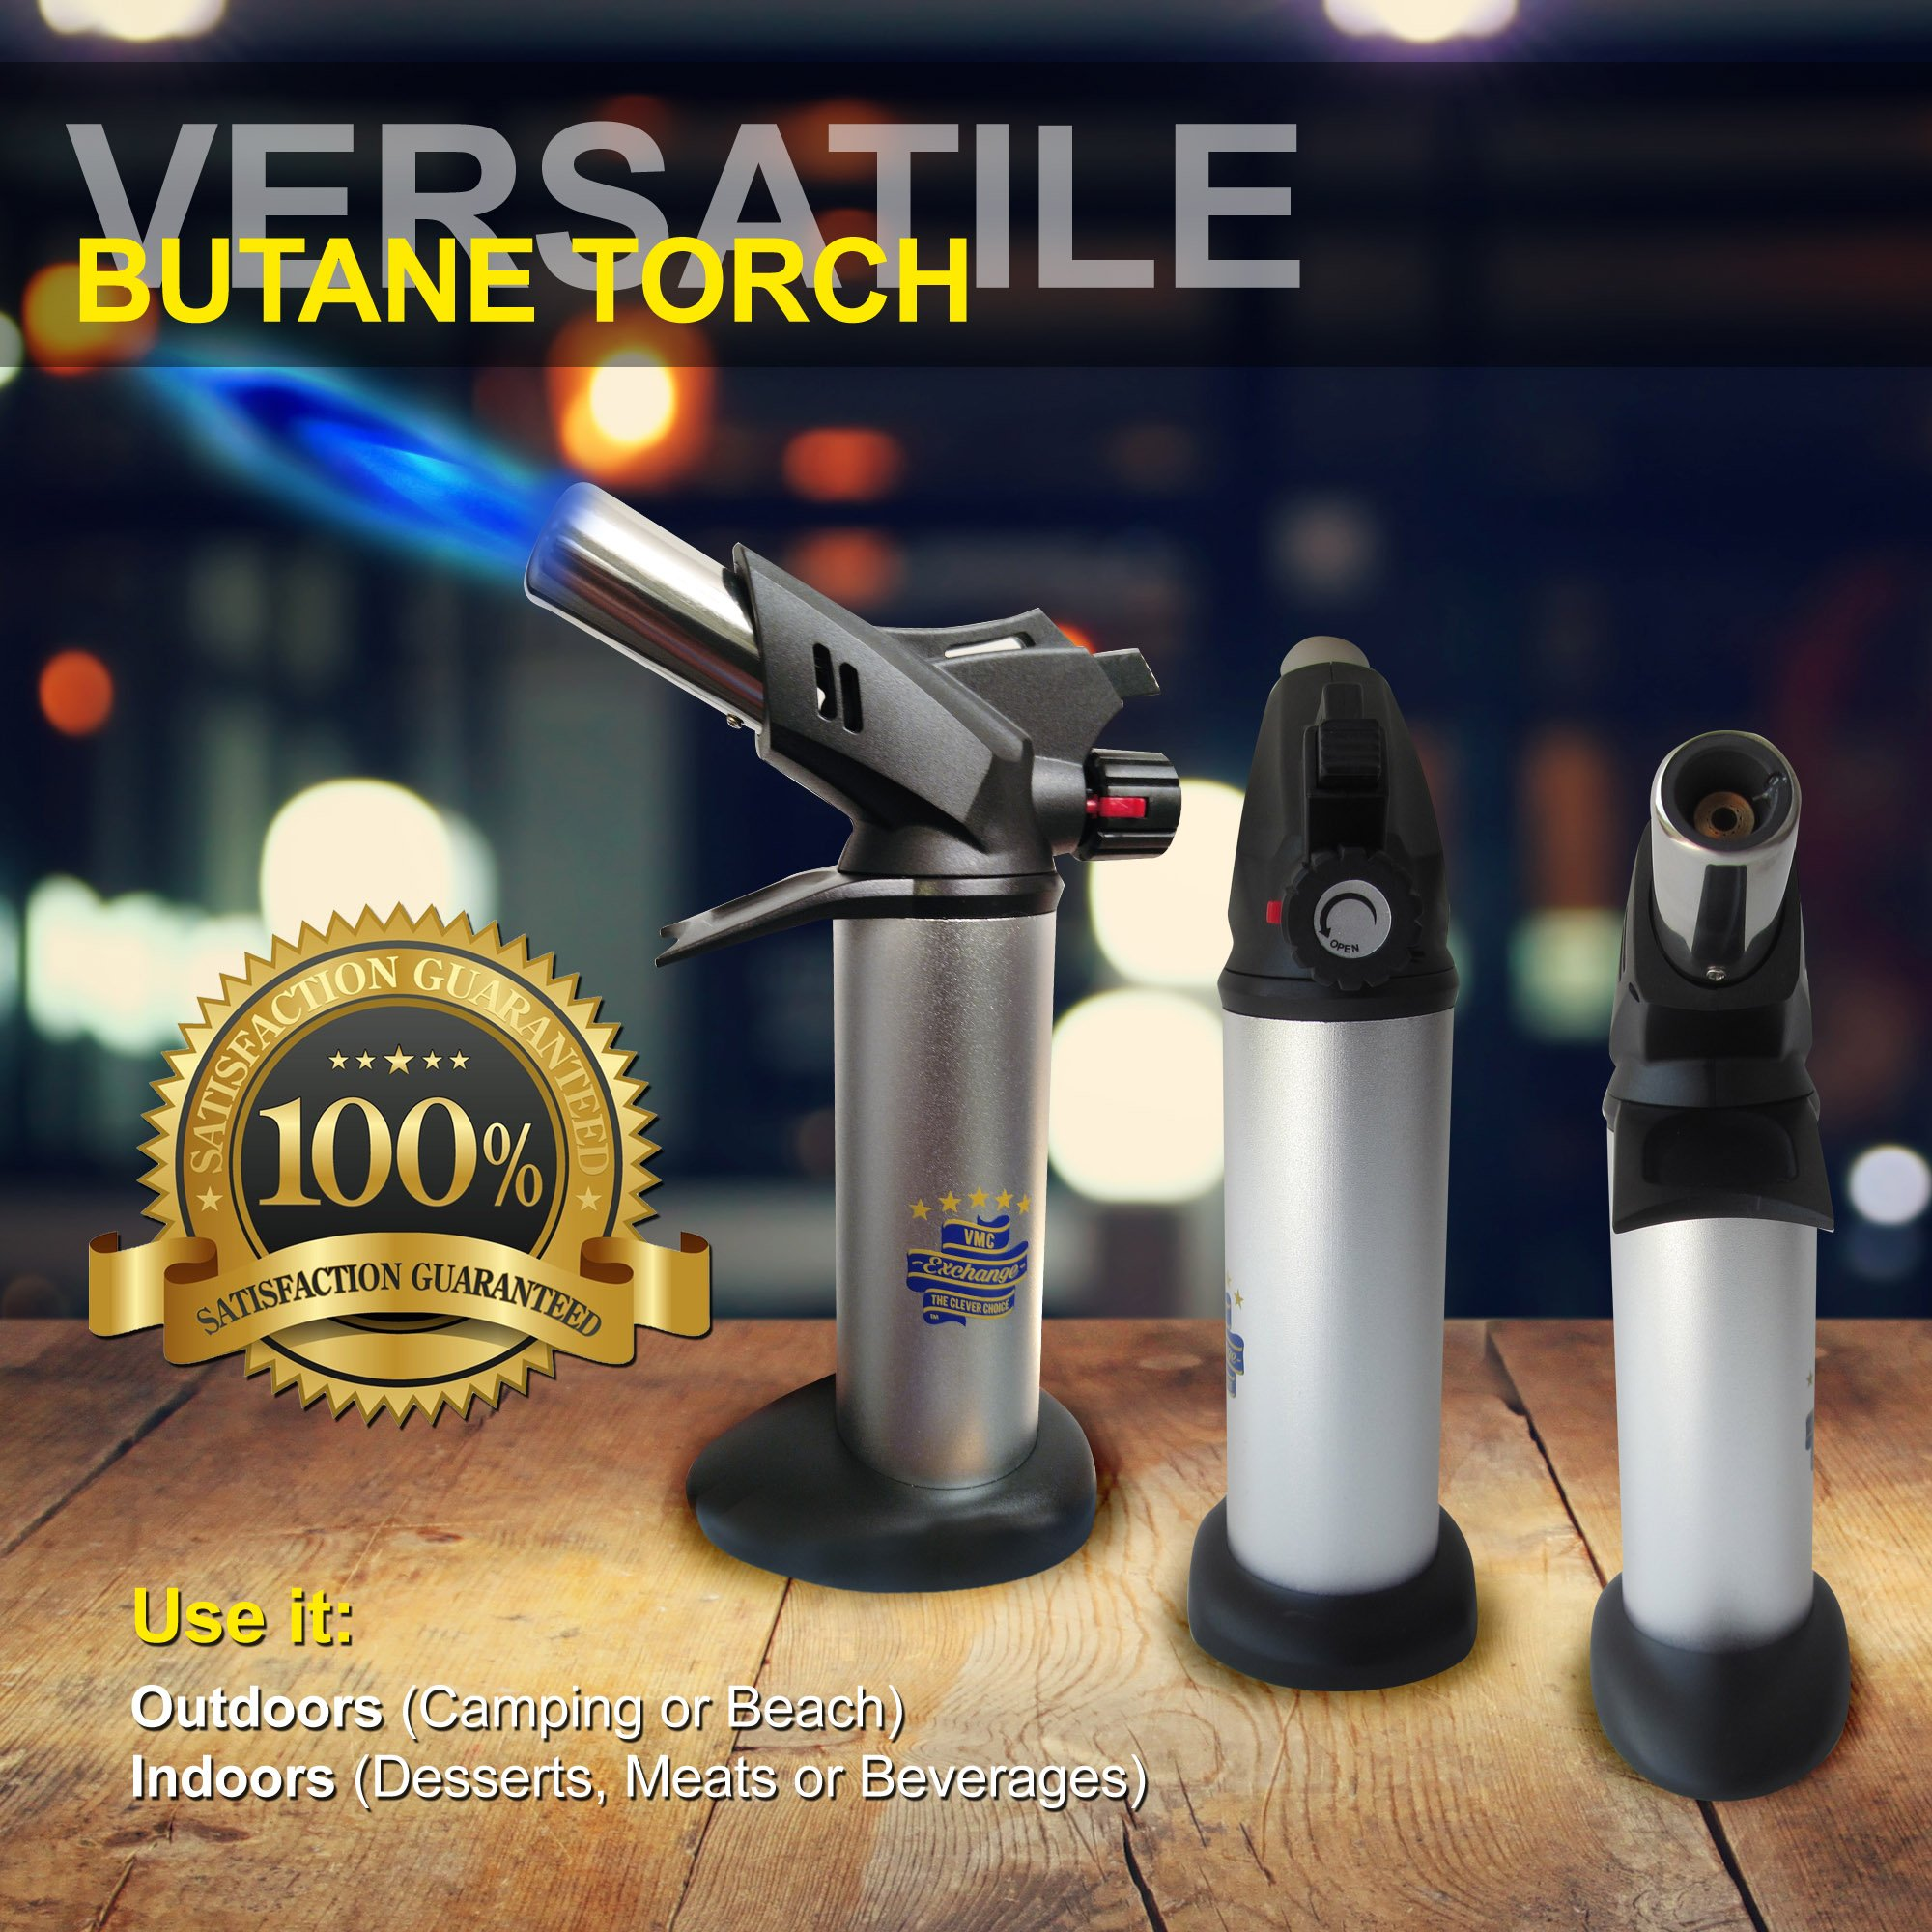 VMC Exchange Professional Butane Torch - Safest Refillable Portable Culinary Kitchen Blow Torch Lighter. Adjustable Flame for Crème Brûlée, Cooking Food, Searing, Blazing, Camping, Welding, BBQ & More by VMC Exchange (Image #3)